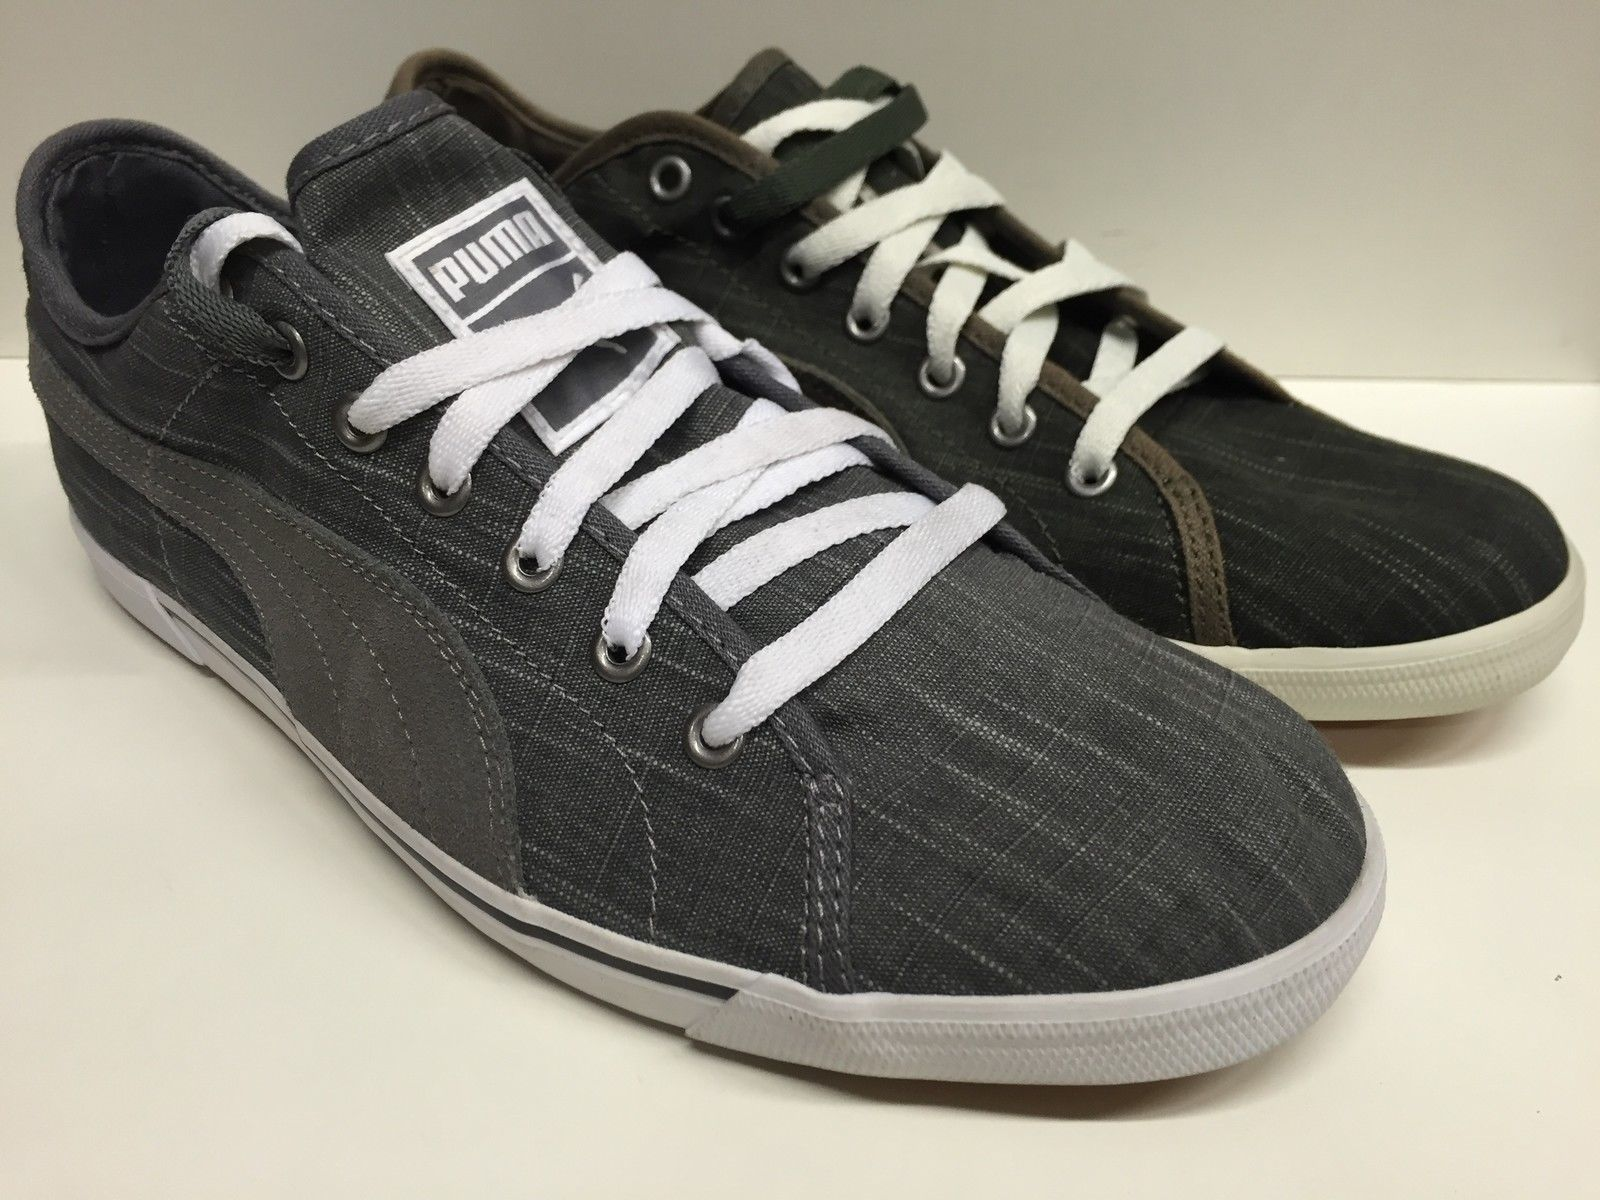 SCARPE SNEAKERS UOMO PUMA ORIGINAL BENECIO DRILL 352729 TELA SHOES MAN SCARPETTE